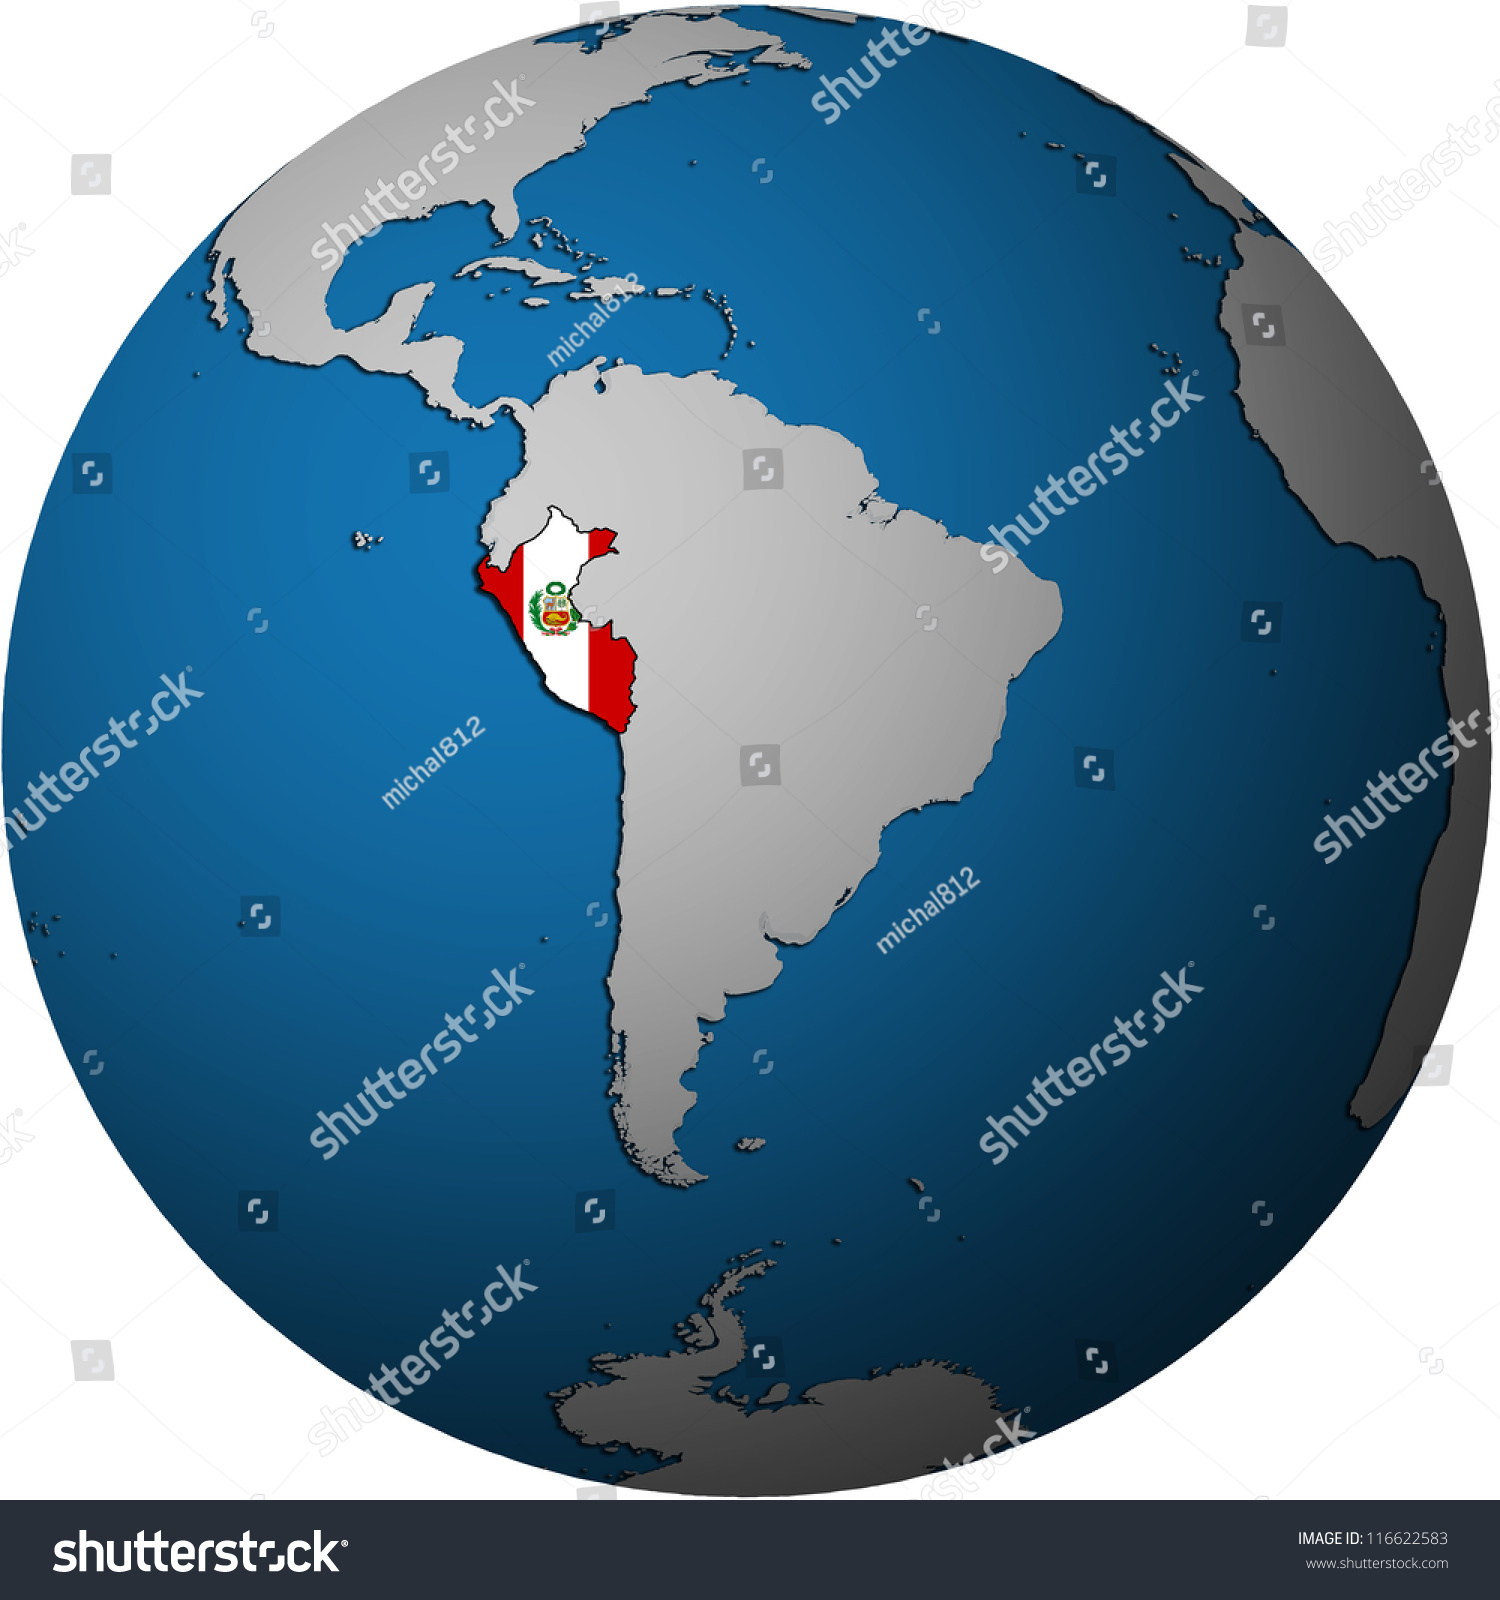 Globe at Night   Maps and Results also World Map  A clickable map of world countries together with  as well  furthermore  likewise Archived  Location  Position on the Earth's Surface as well Africa Map Globe   U S MAPS together with Vector Map of Globe of Pacific Ocean   Blue   Free Vector Maps furthermore Map Flag Peru On Isolated Over Stock Illustration 116622583 also Google Maps now depicts the Earth as a globe   The Verge likewise Map Of United Kingdom On Model Of Globe Stock Illustration as well North and South America Map of the World Globe Vector Image as well More  Moving  Countries and Changing Geography   Mandela Effect together with  likewise Illustrated World Map Puzzle Globe together with Location of China China from the globe view  World Political Map. on map of globe